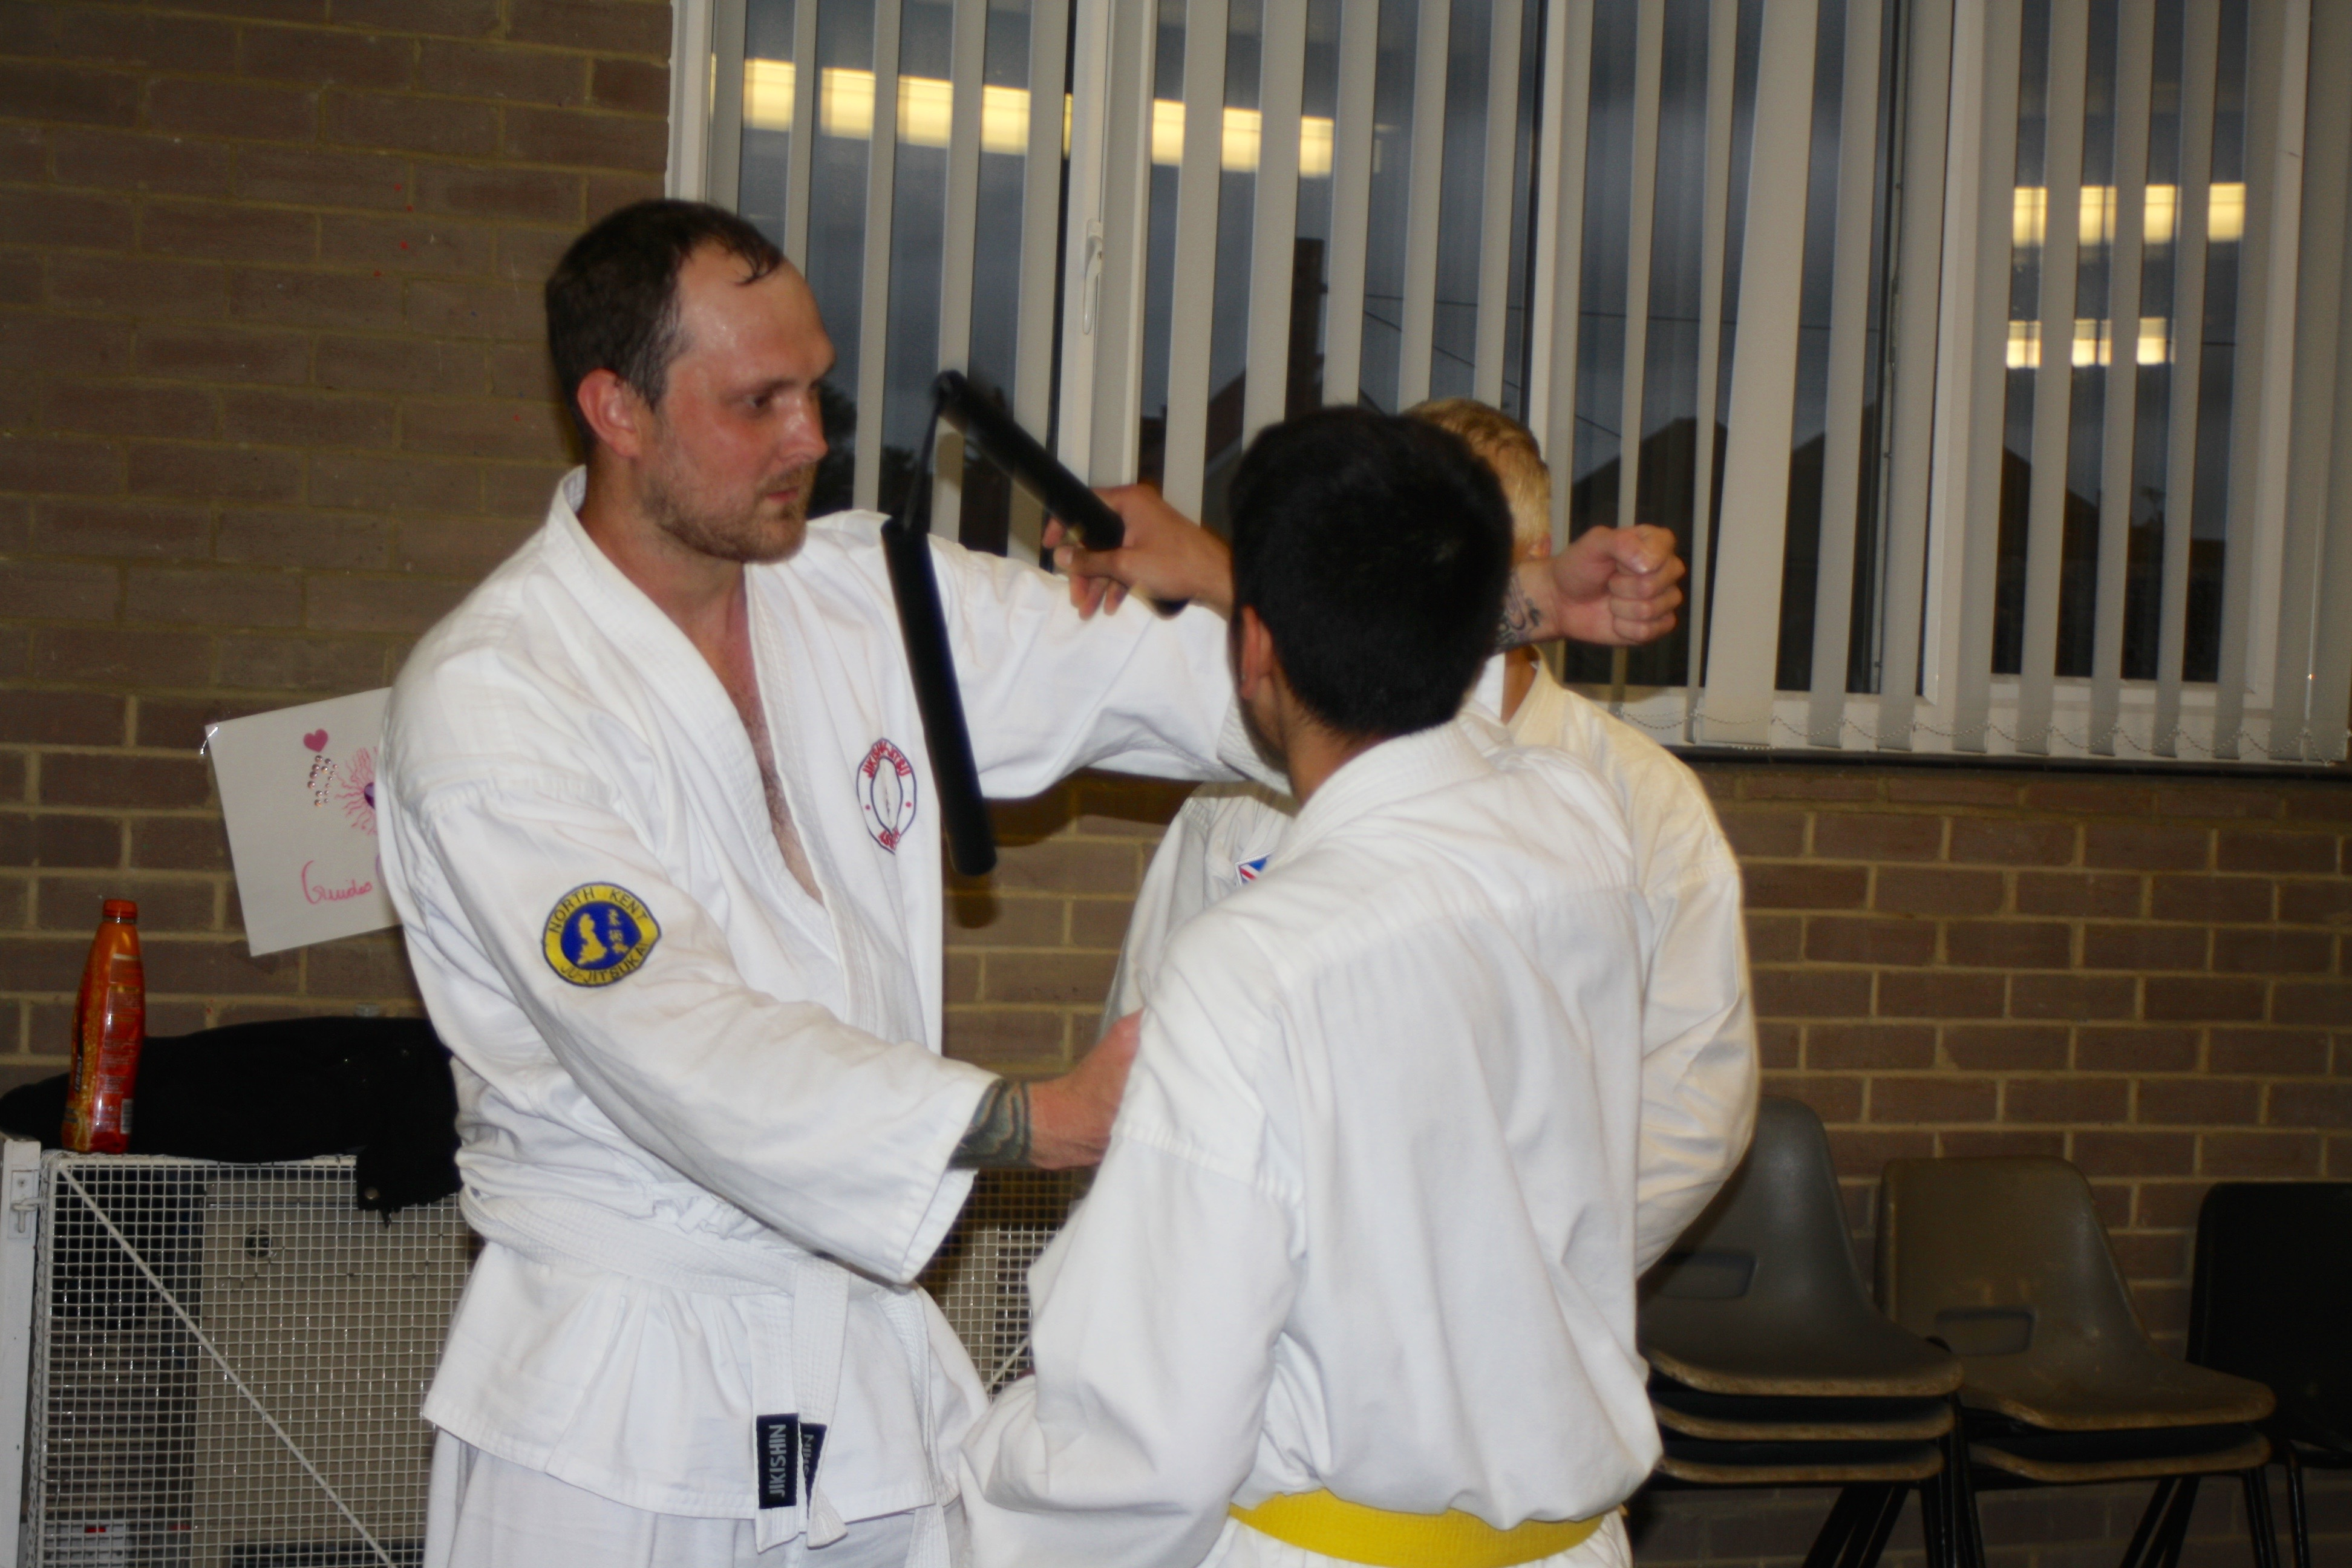 Student Practices Nunchaku Technique